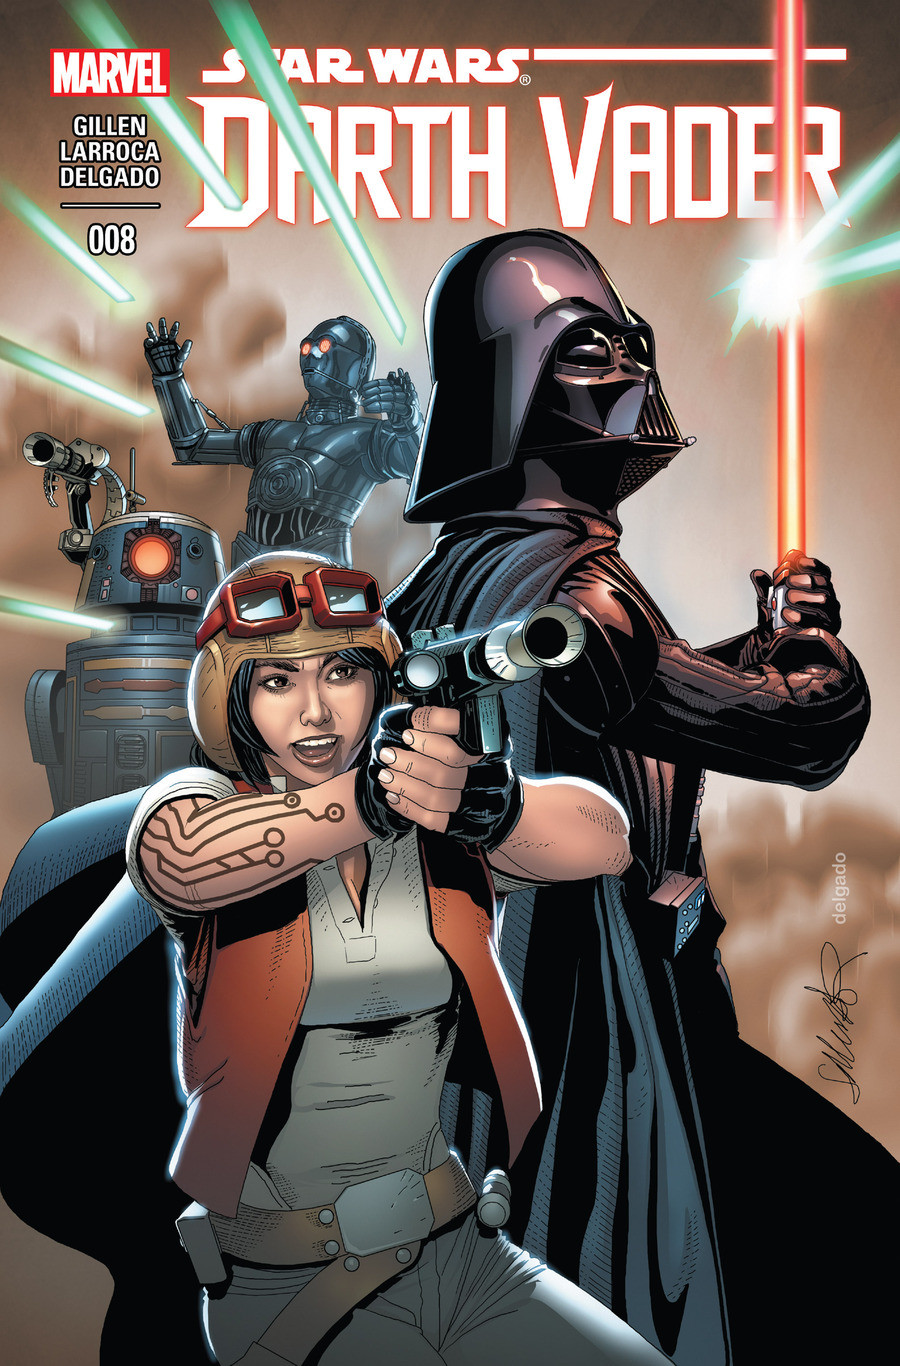 Star Wars Darth Vader issue 8. The eight issue of the canon Darth Vader comic Click the lists mention history and these three links for every previous Darth Vad